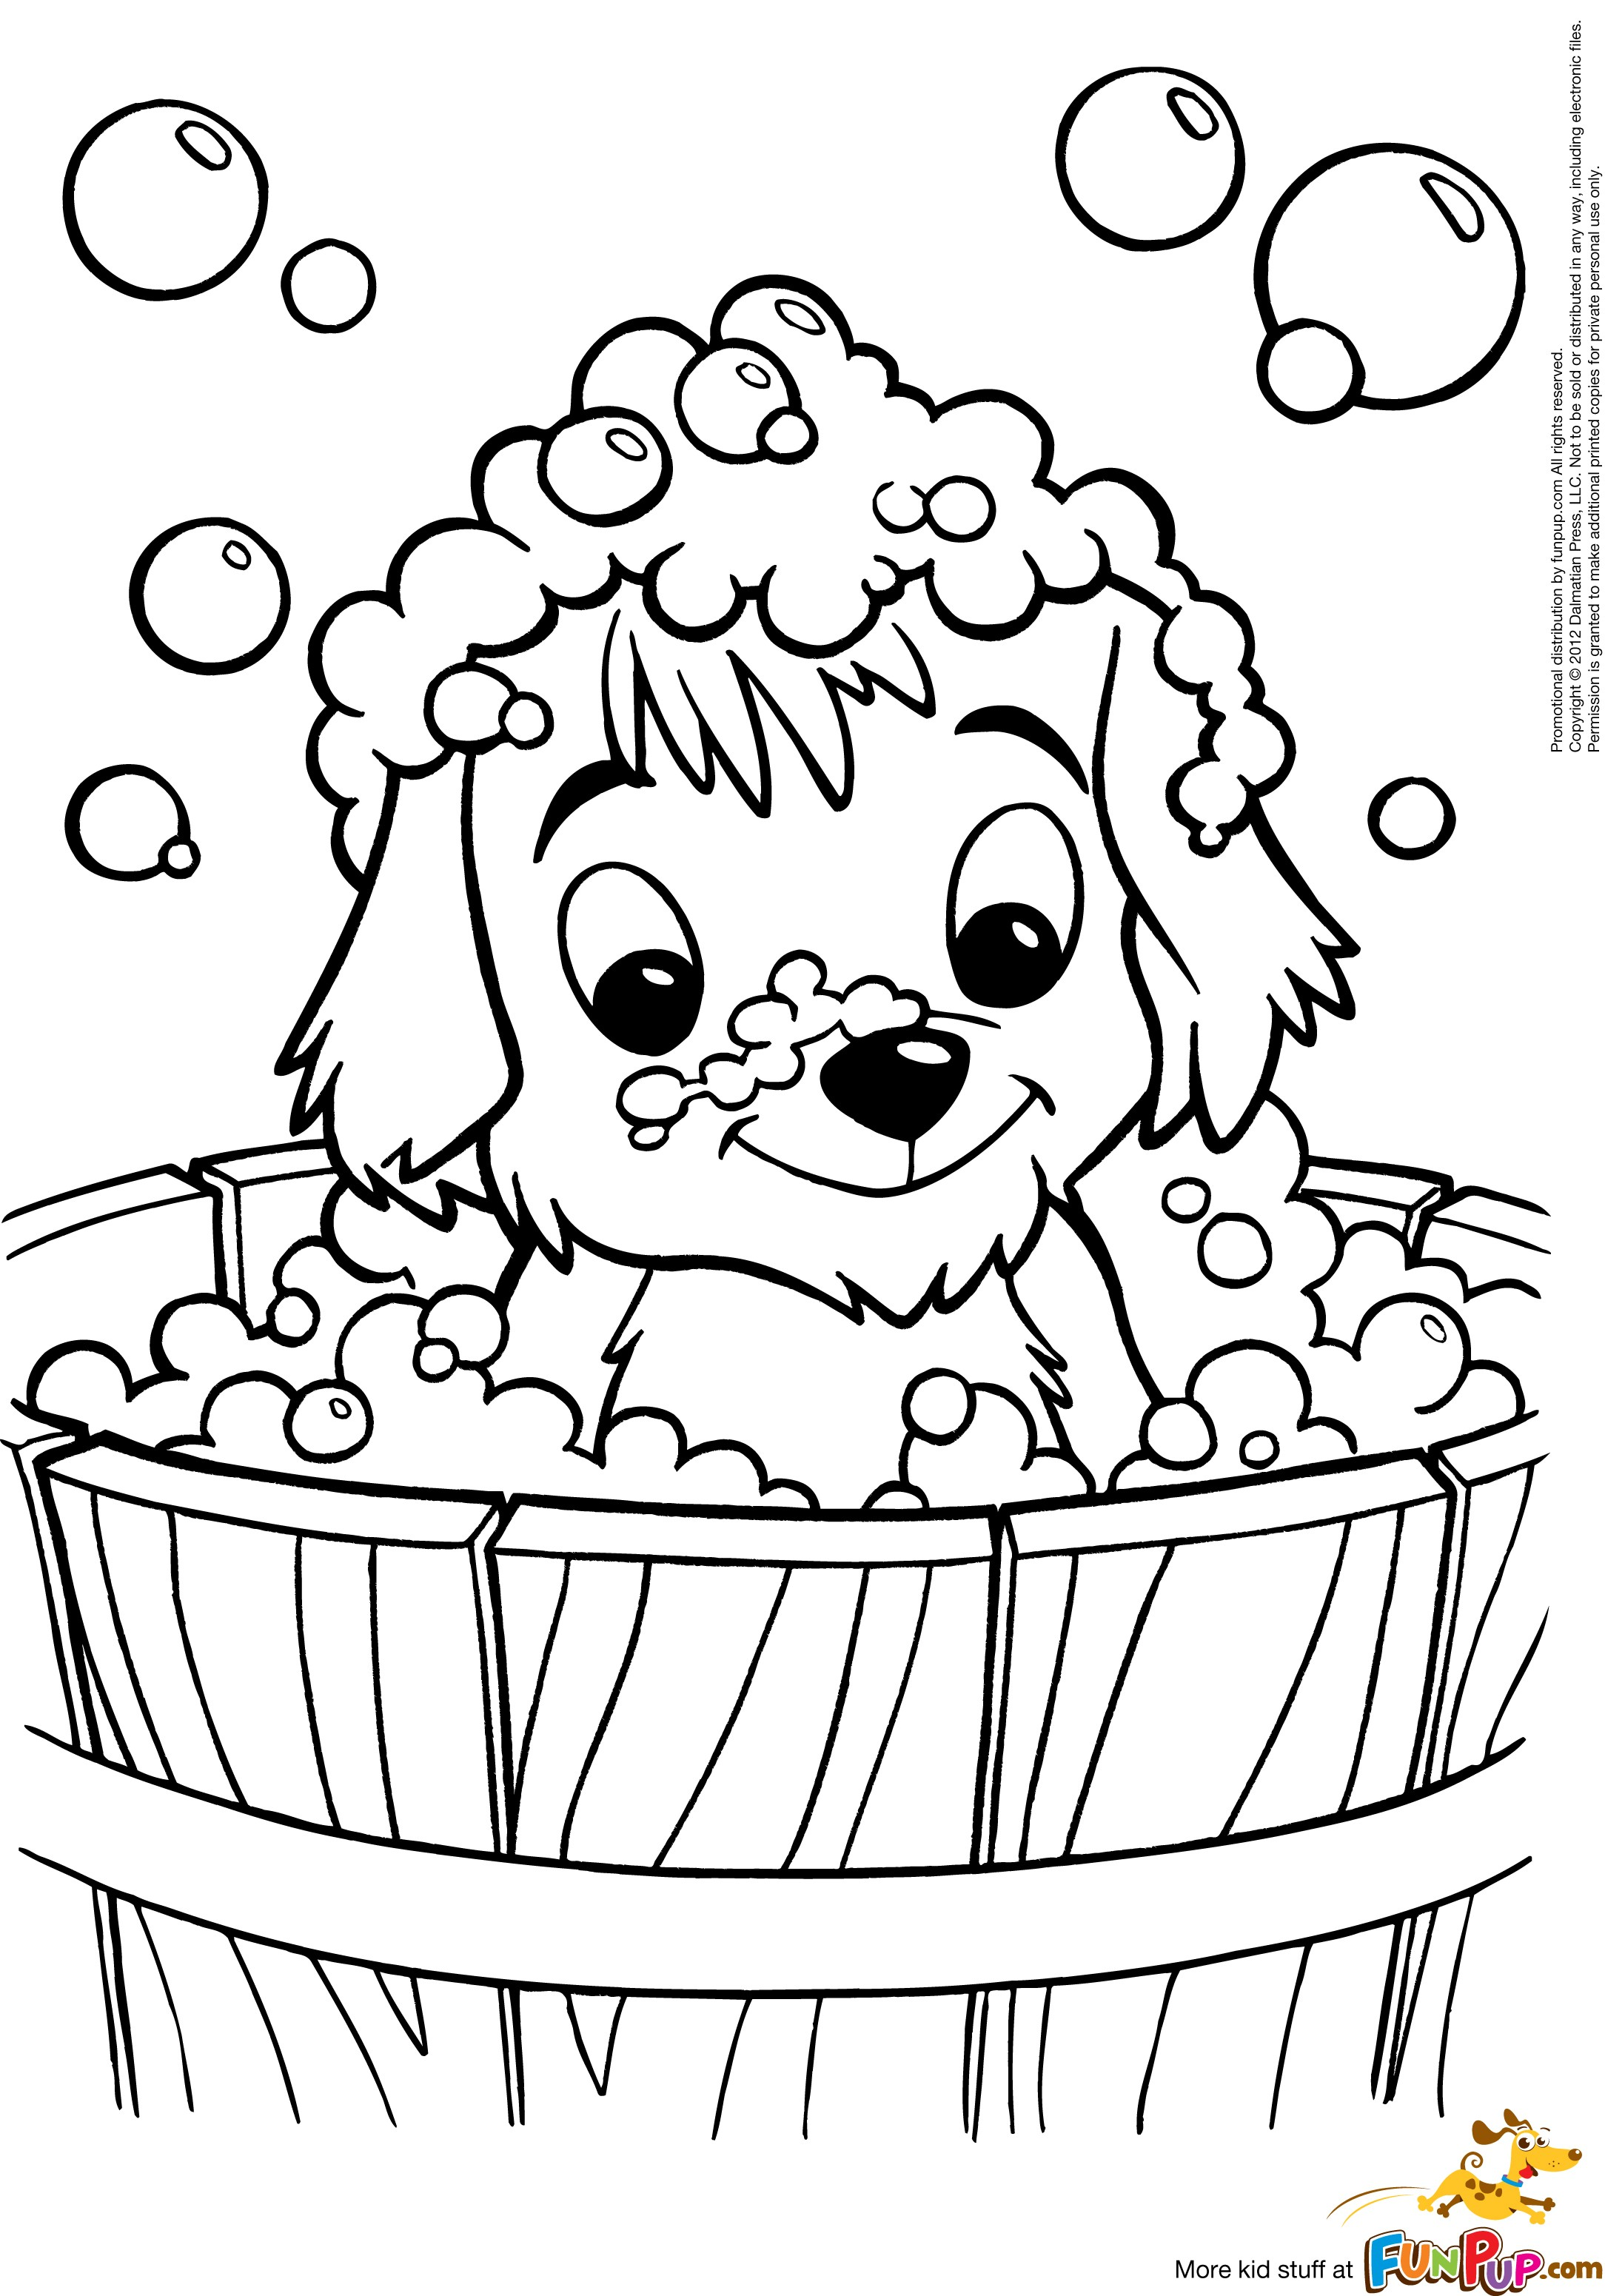 kawaii dog coloring pages 50 free cute puppy coloring pages updated october 2020 dog coloring pages kawaii